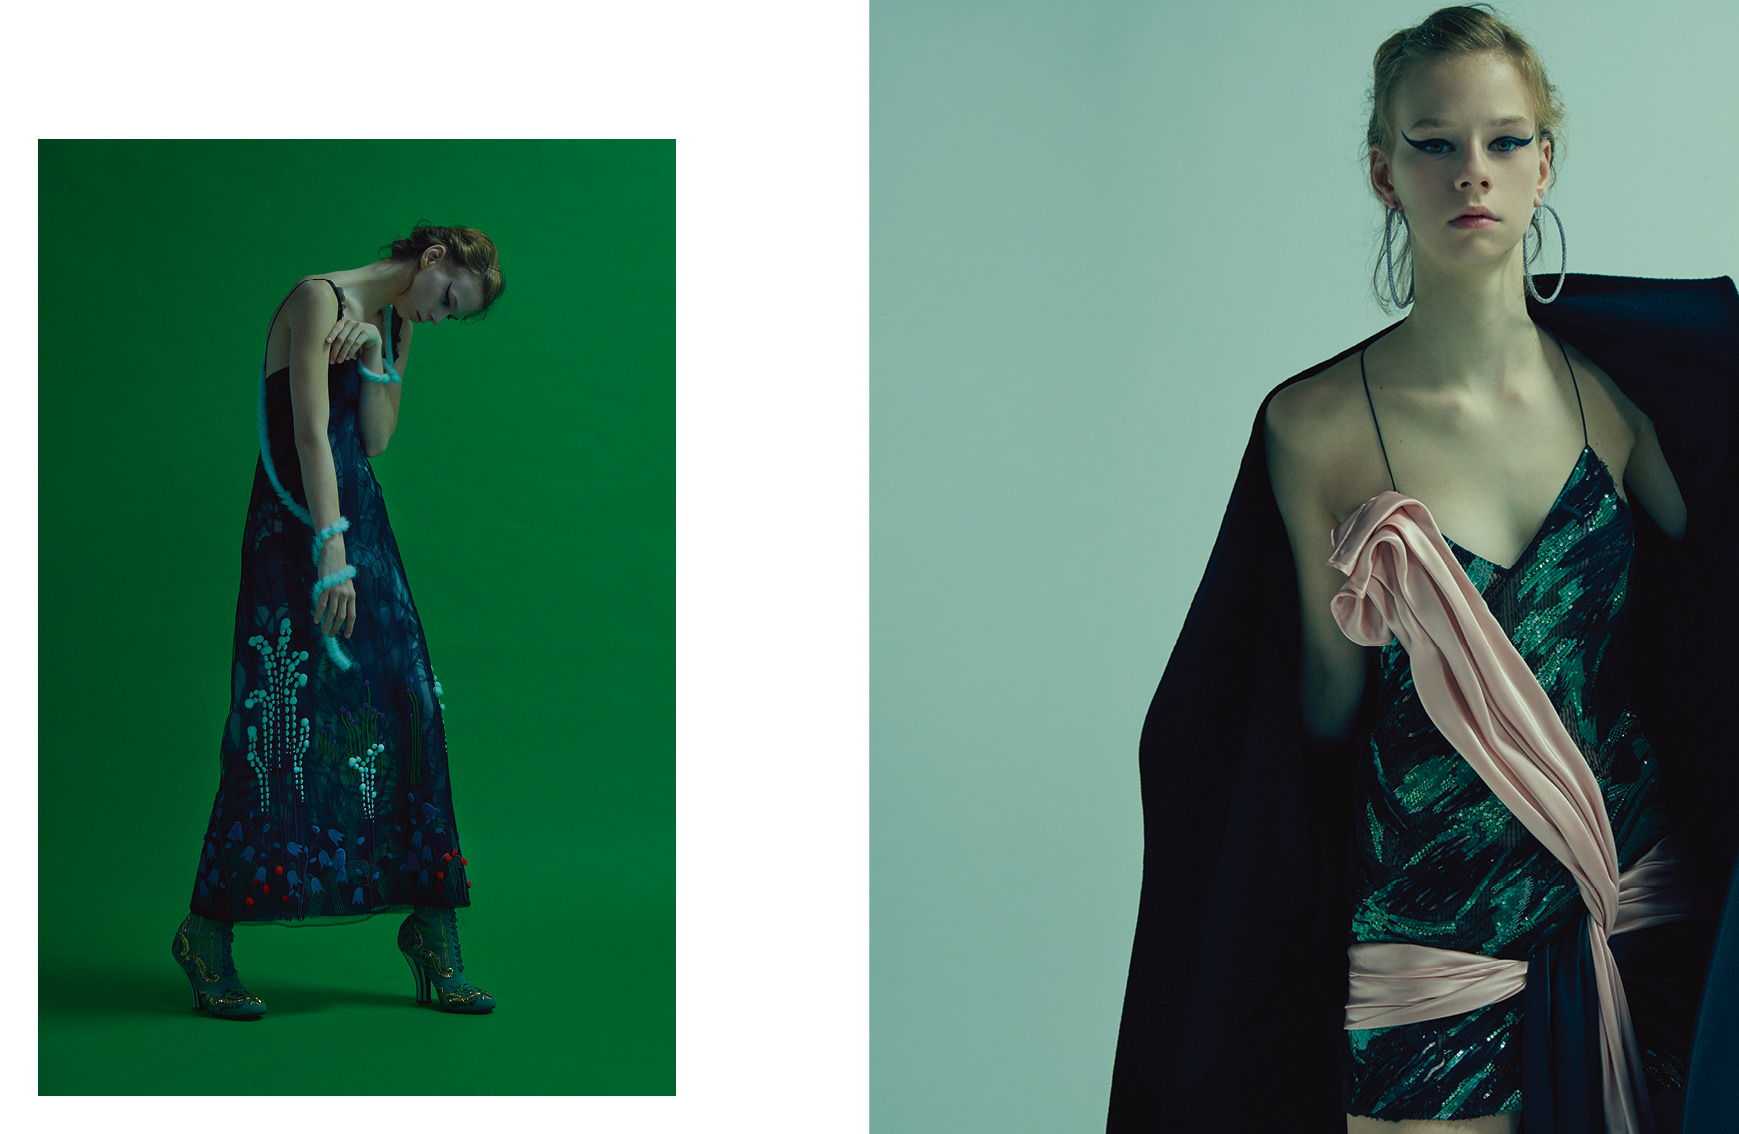 """Left : """"The young Lady with the bird"""", organza dress embroidered mink flowers and mink boaand shoes, FENDI HAUTE FOURRURE. Right : Satin and cashmere coat embroidered with Swarovski cristals, satin dress embroidered with Swarovski cristals and earrings,ATELIER VERSACE.   Realisation: Samuel François assisted by Sophie Houdré and Déborah Zetlaoui. Models: Hannah Elyse and Annie Tice at Oui Management. Aniek Klapwijk atWomen Management. Hair : Franco Argento at Atomo Management. Make Up: Satoko Watanabe at ArtList. Manicurist : Sally Derbali. Numeric: Alexandre Marillat. Production: Nadia Lessard chez Talentand Partner."""